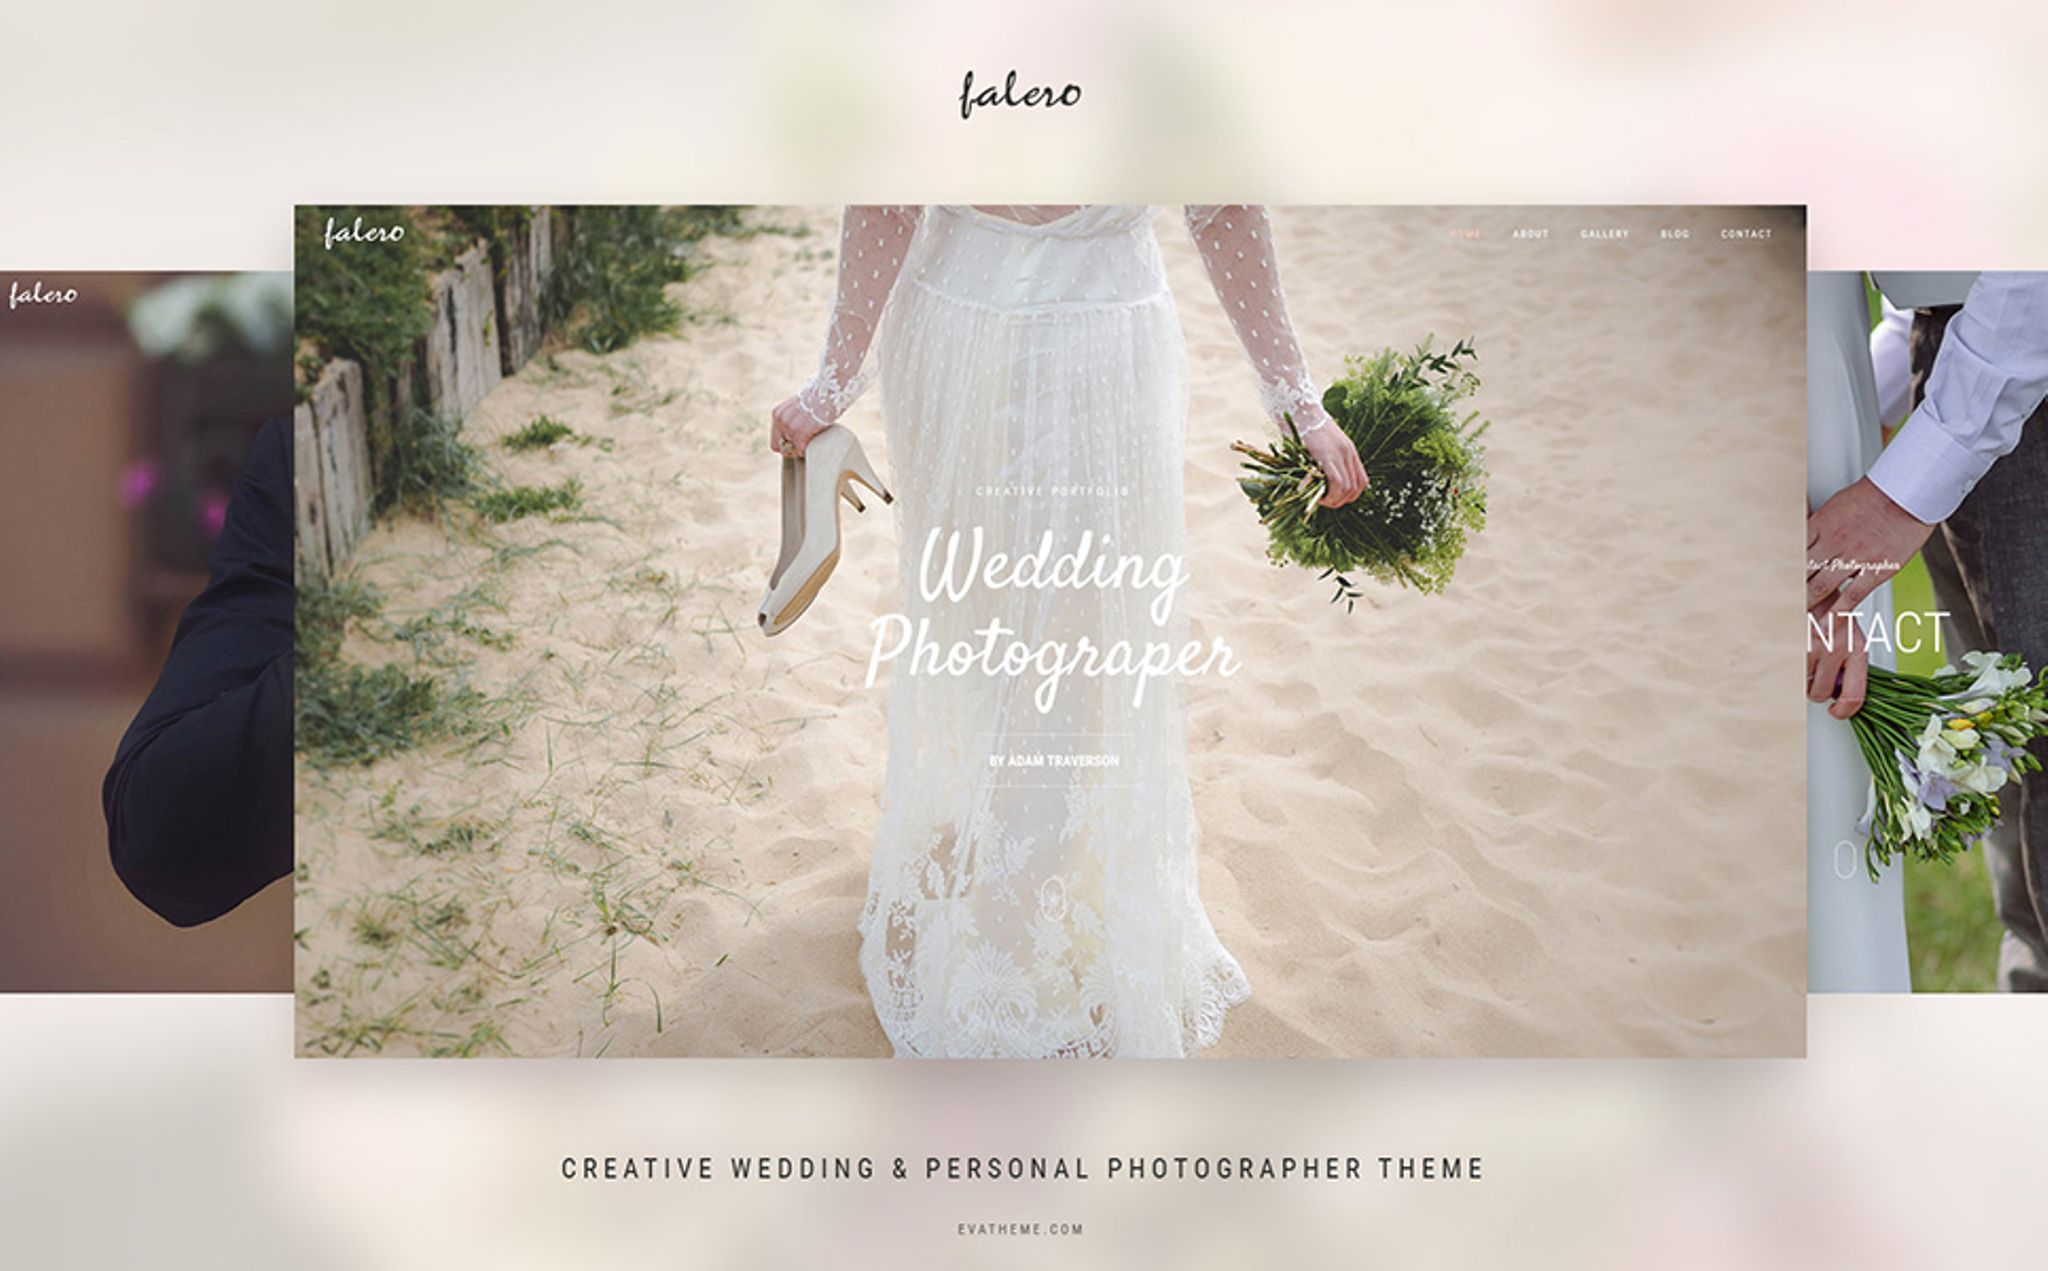 Falero Wedding Photographer Theme WordPress Theme Big Screenshot